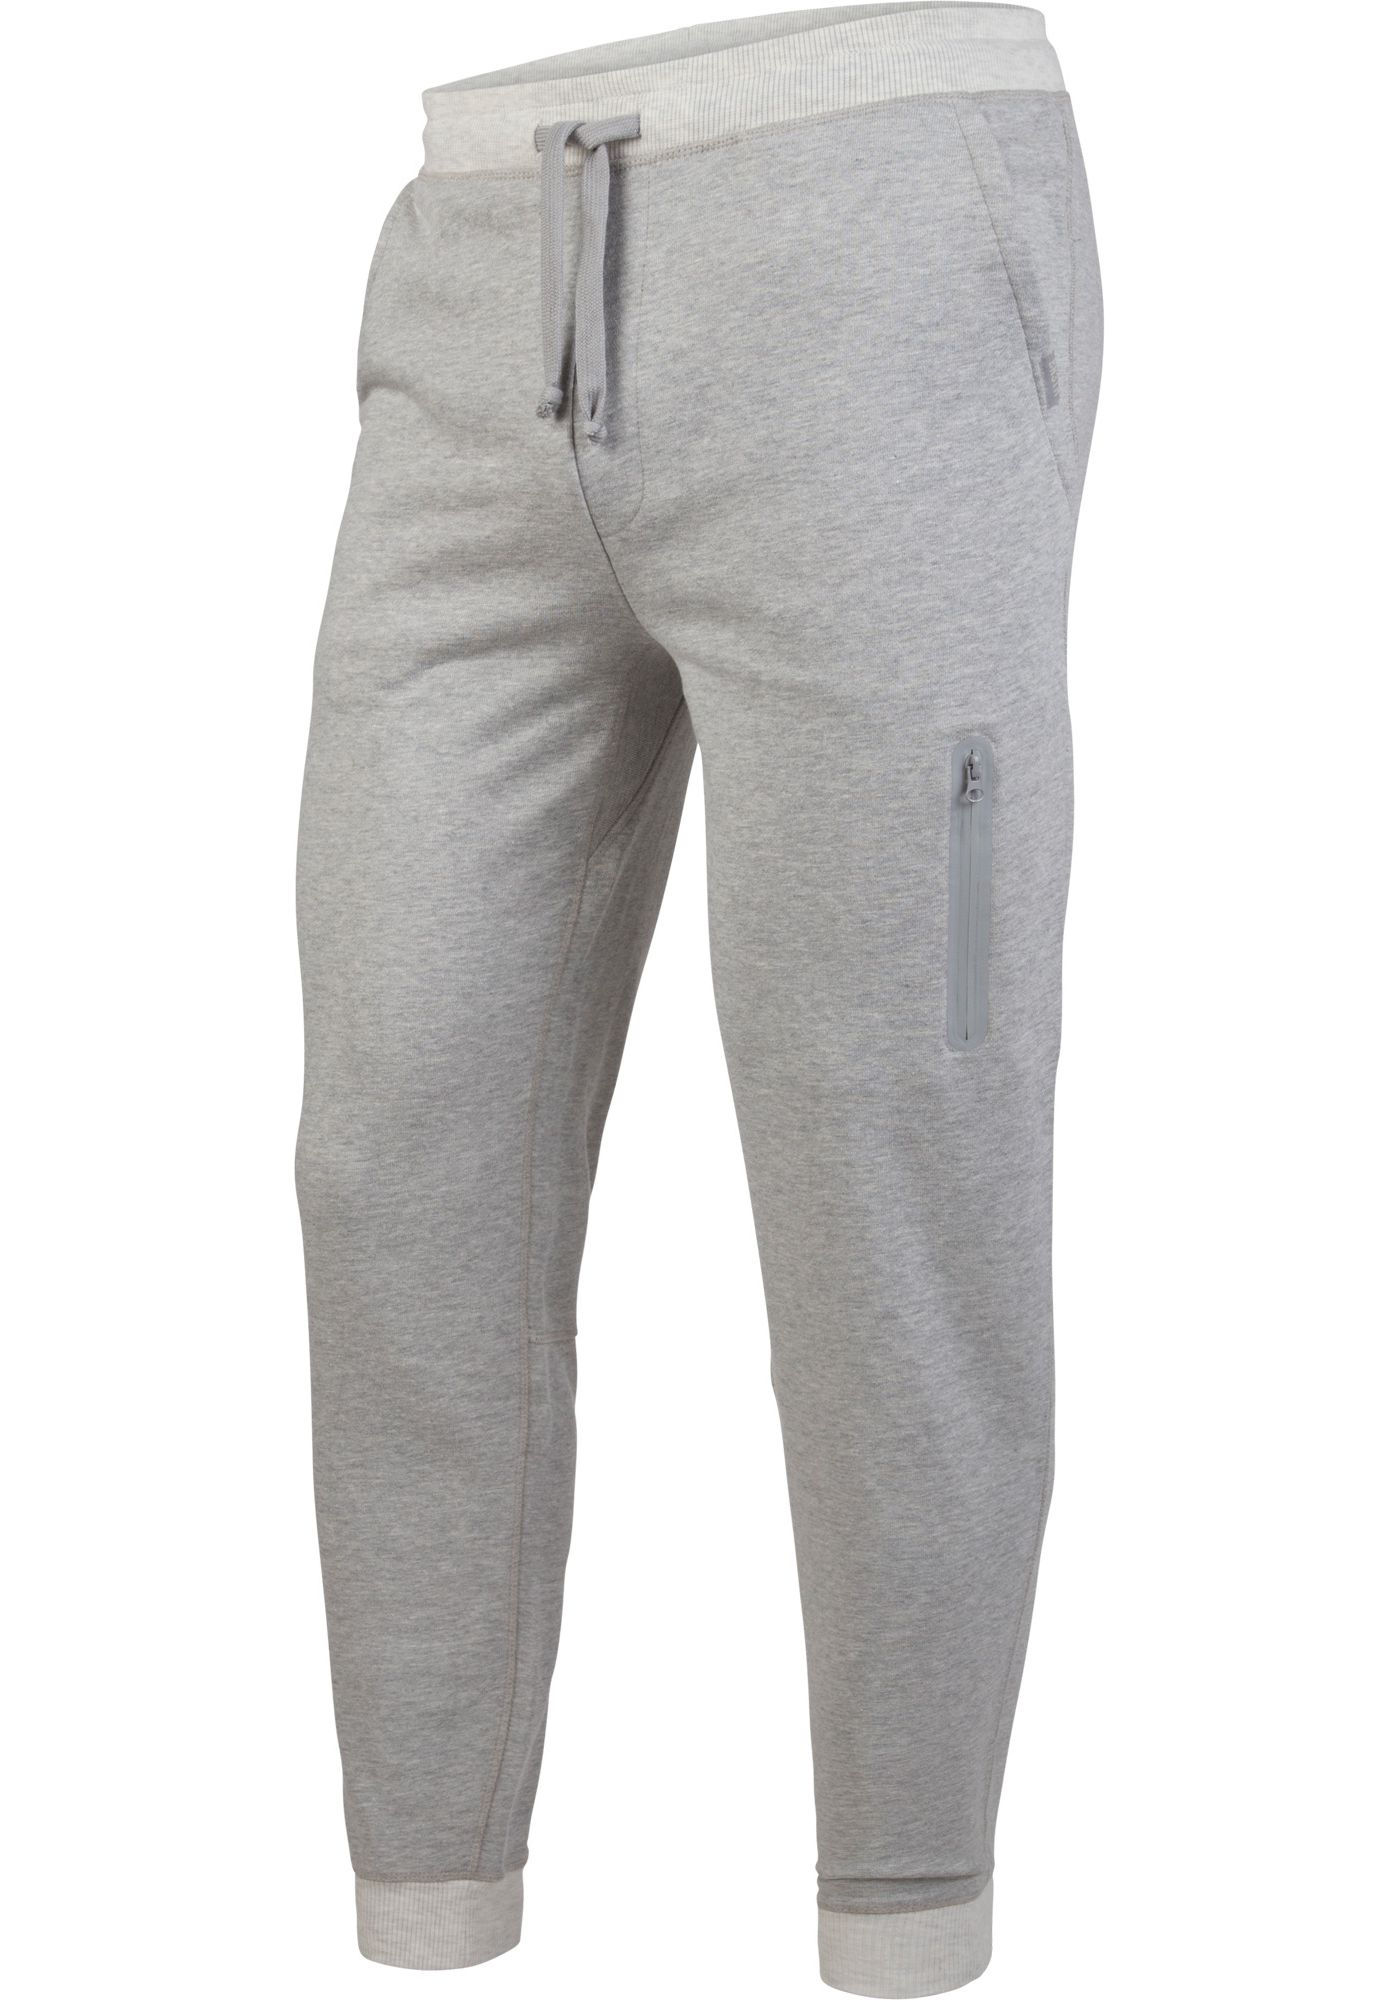 BN3TH Men's French Terry Cotton Jogger Pants